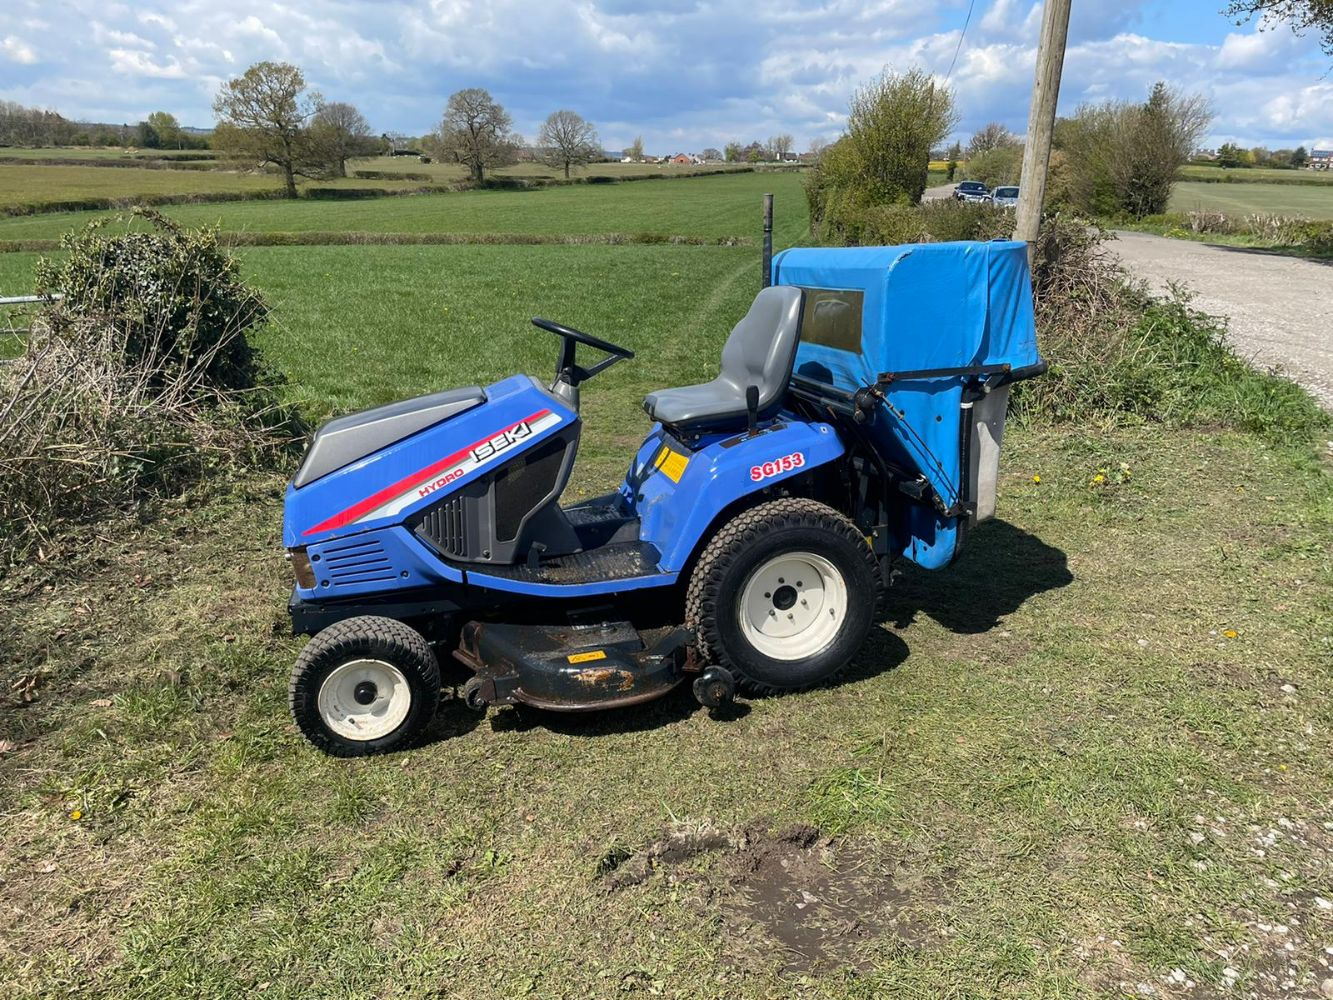 ISEKI SG153 RIDE ON MOWER, WINBULL WB07B TRACKED DUMPER, MIXER, TAG WATCHES, TWIN DECK TRANSPORTER, ONEPLUS 8 PRO ALL ENDS FROM 7PM SUNDAY